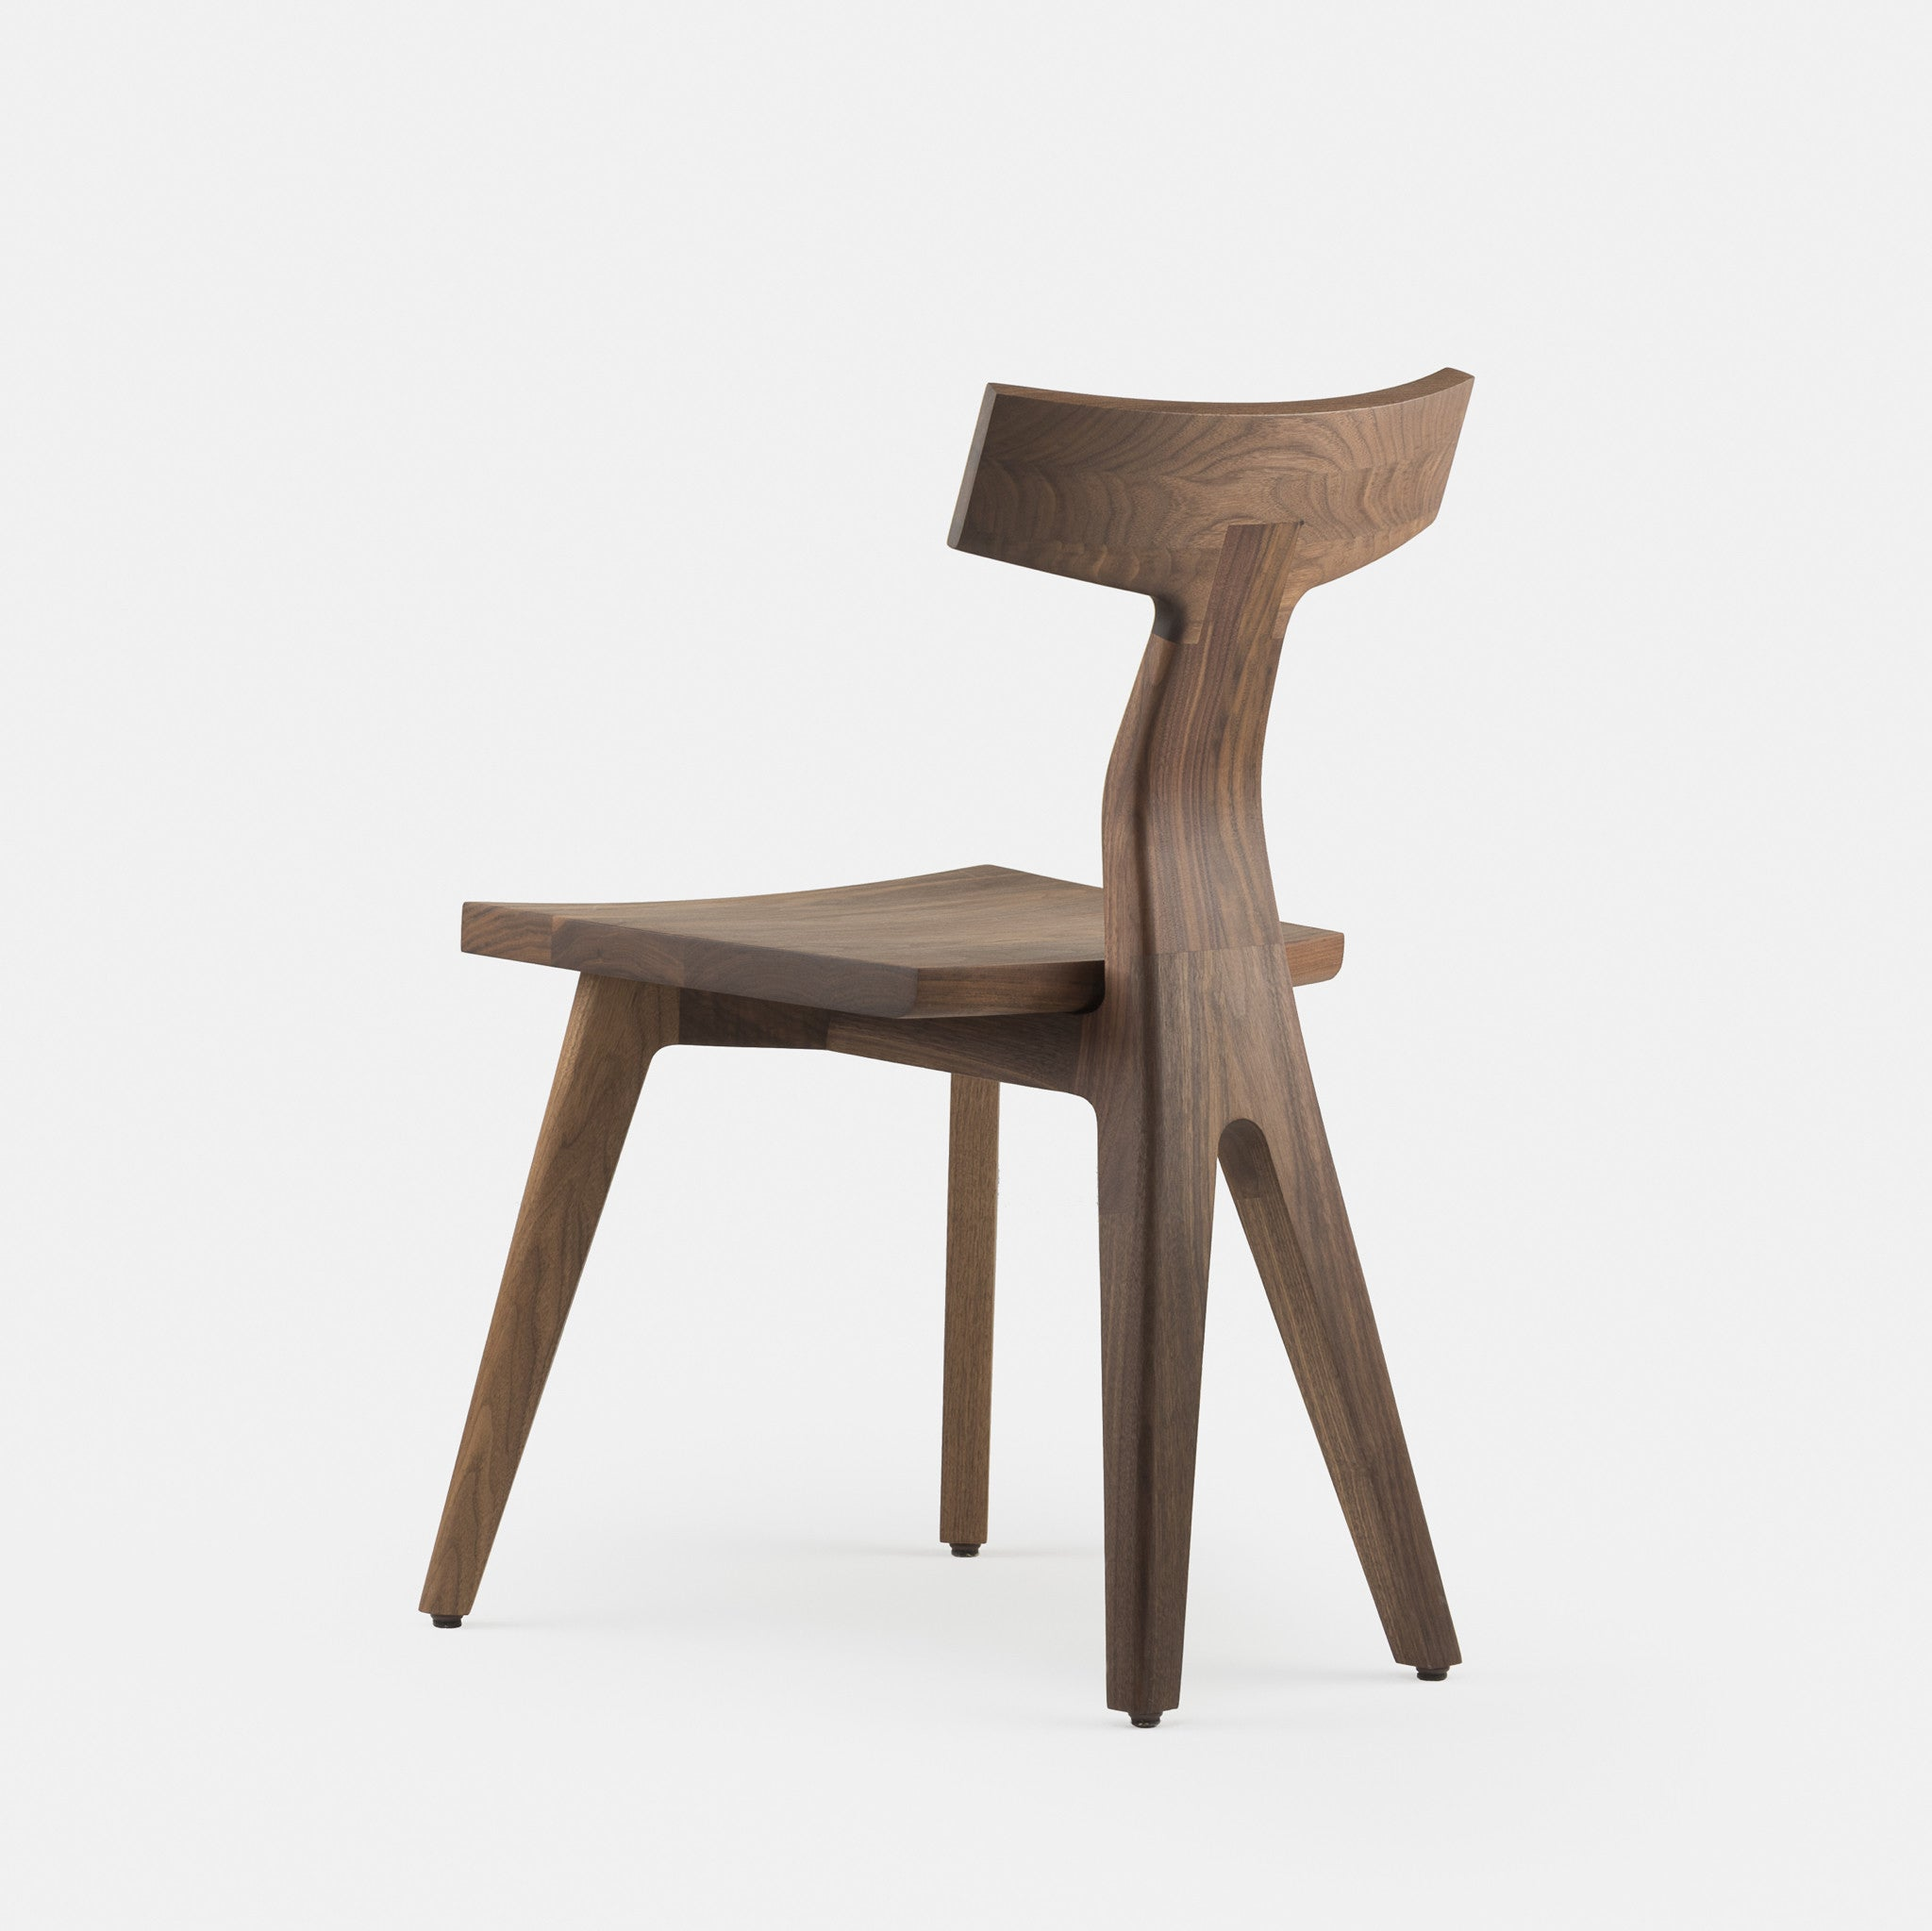 & Fin Dining Chair by Matthew Hilton u2014 haus®